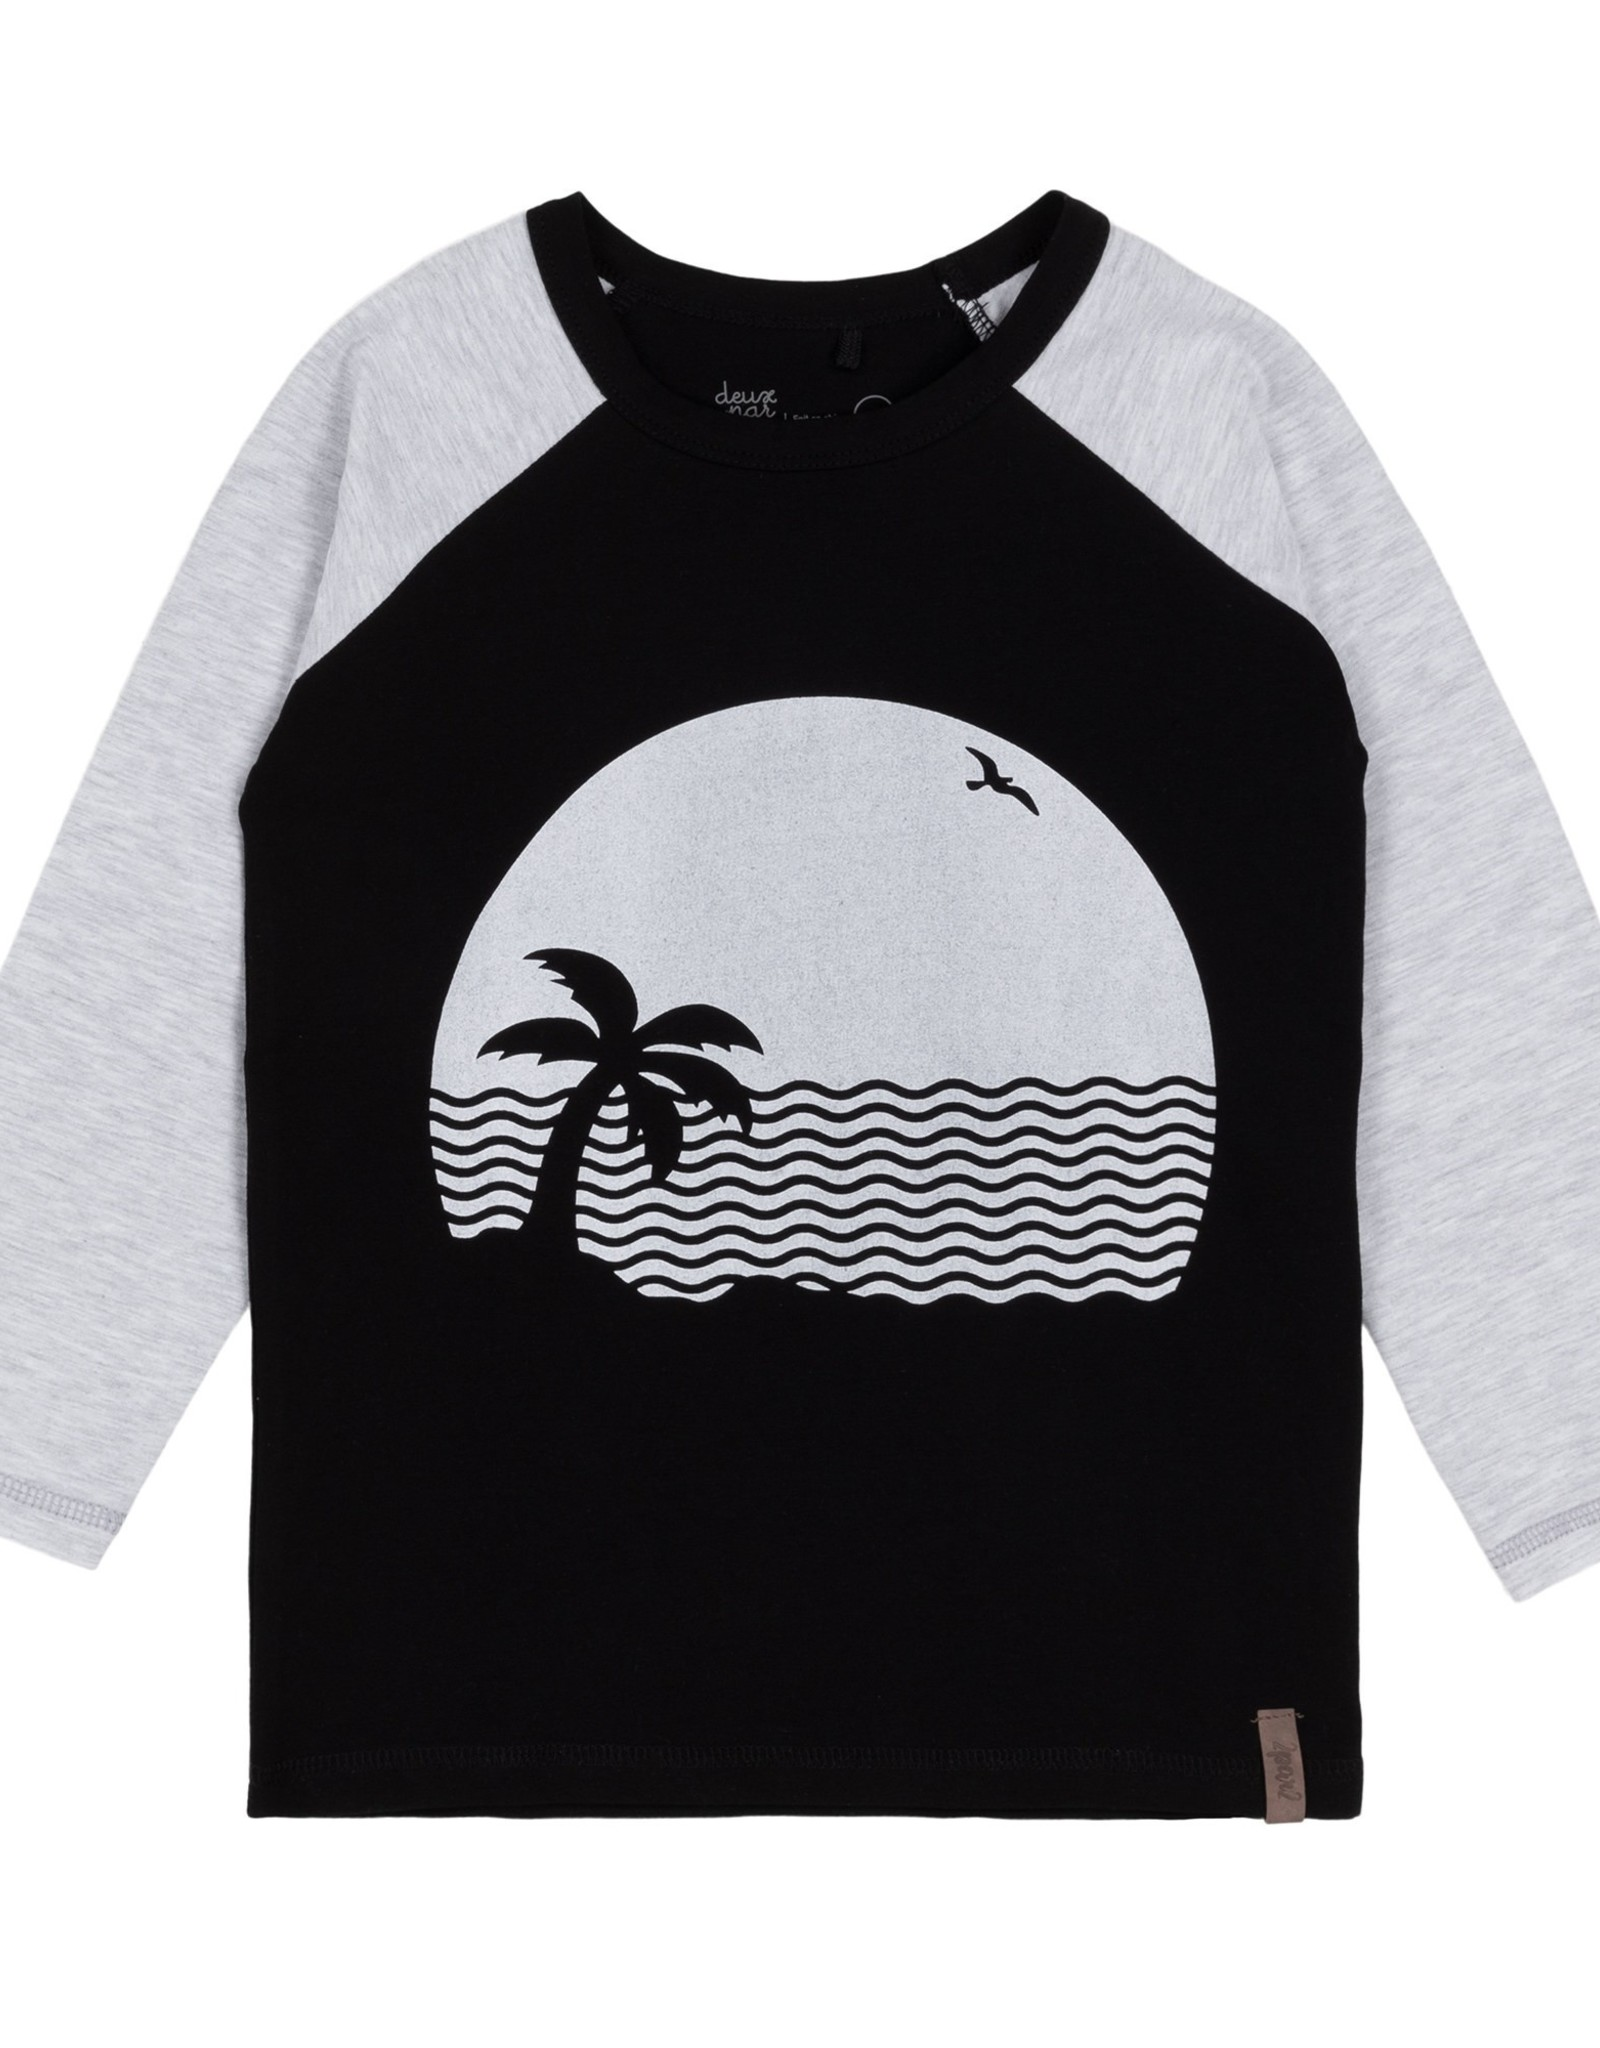 DeuxParDeux Vacation Beach Print Long Sleeve Top